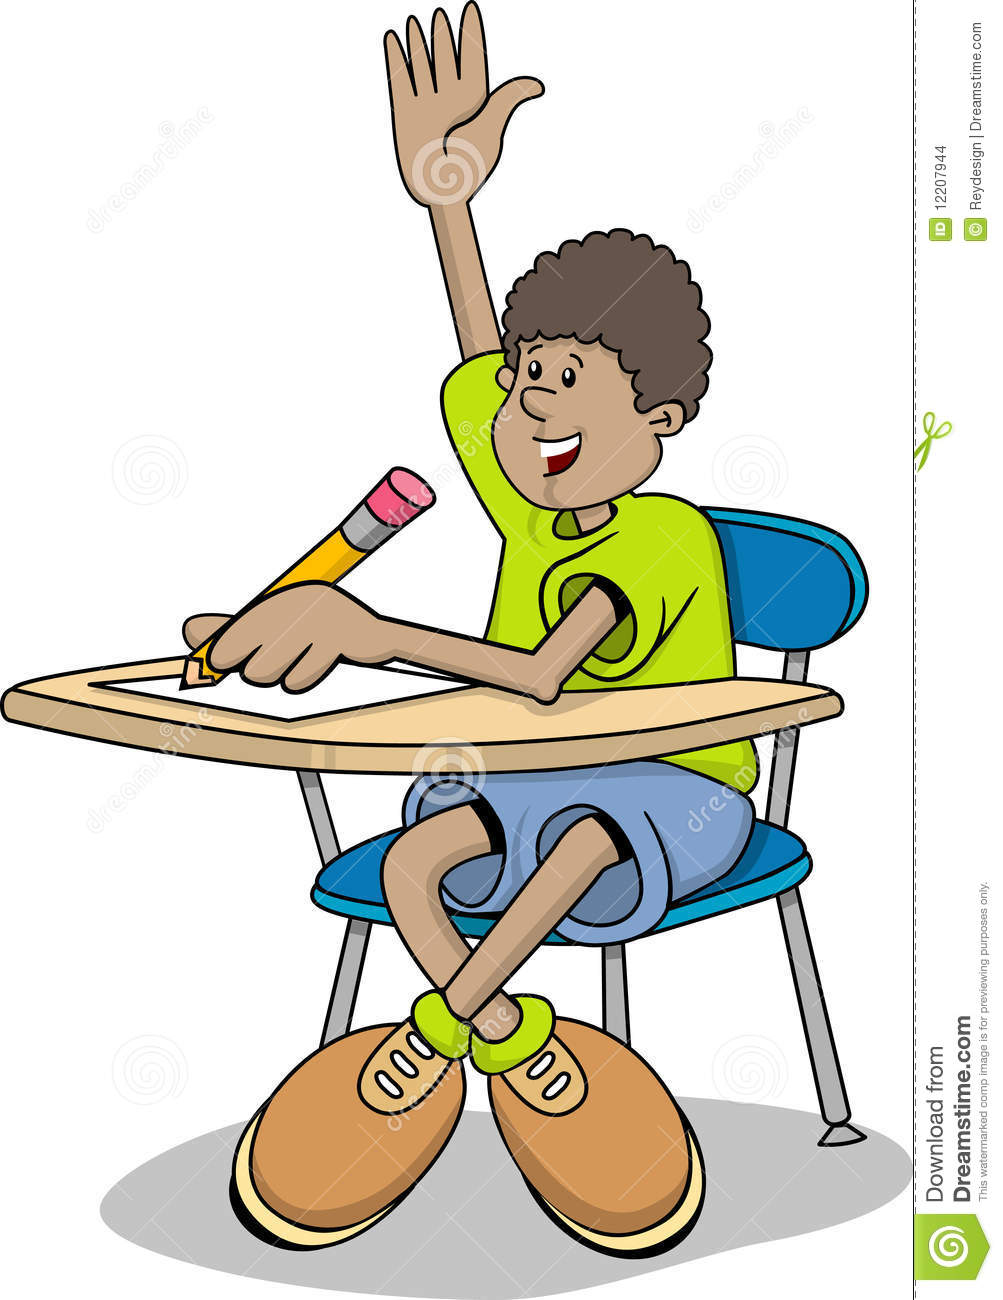 Students on layer sitting. Carpet clipart student